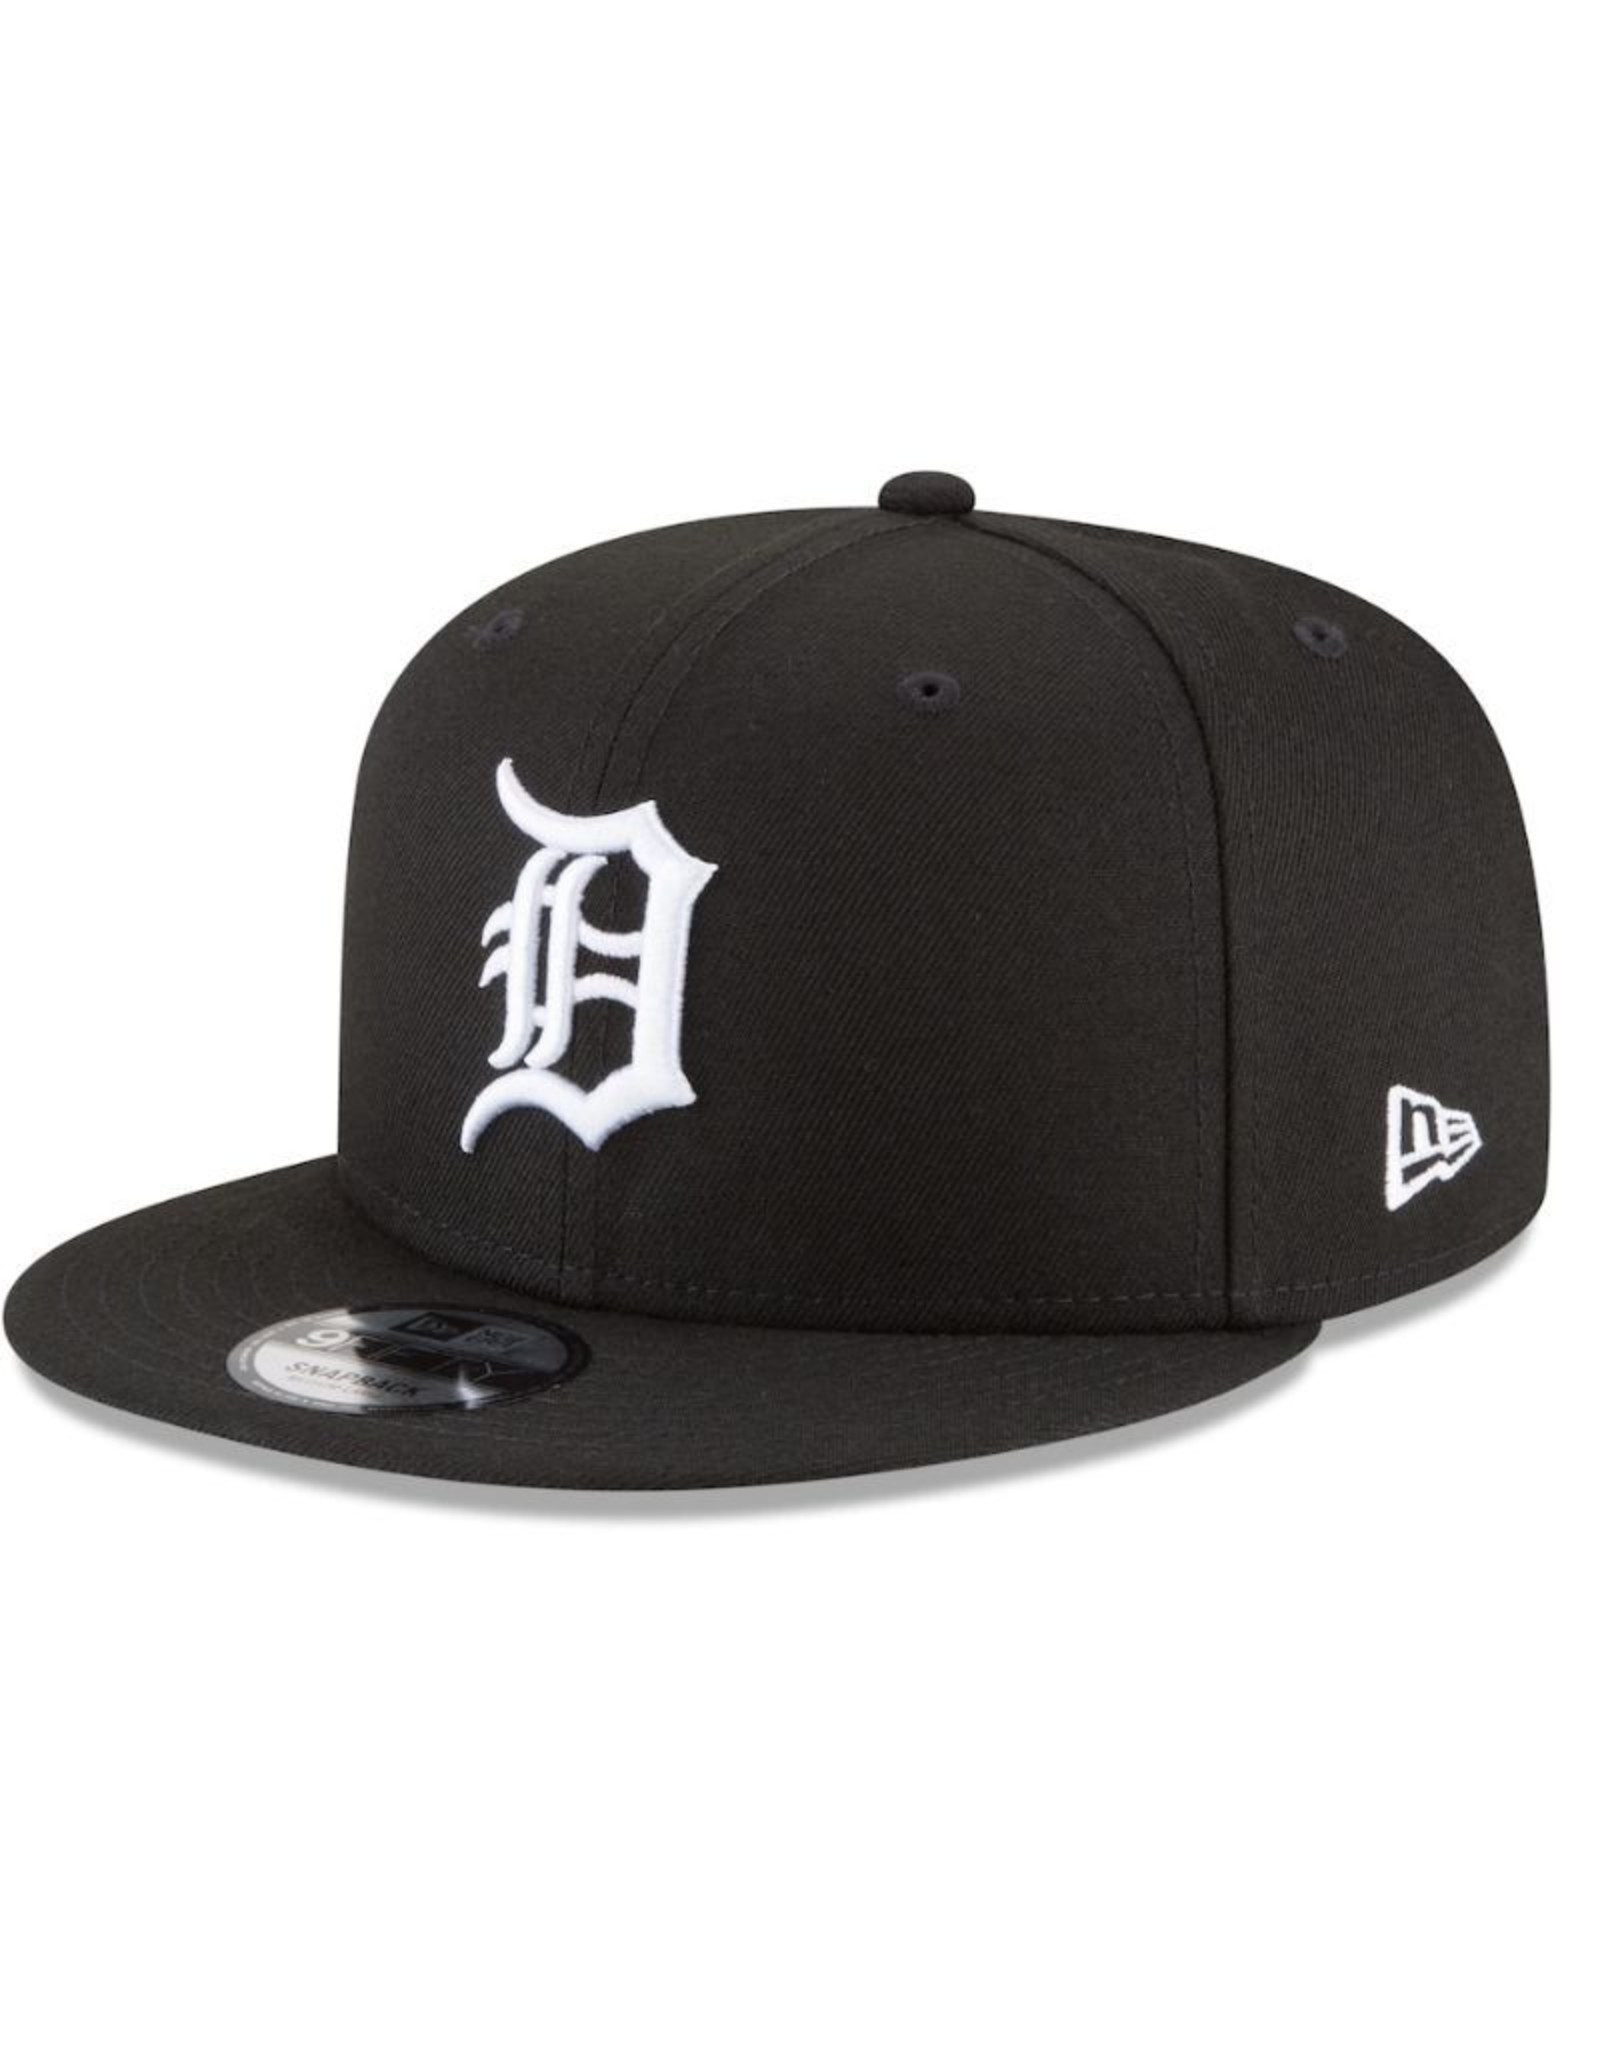 New Era On-Field Authentic 59FIFTY Home Hat Detroit Tigers Navy